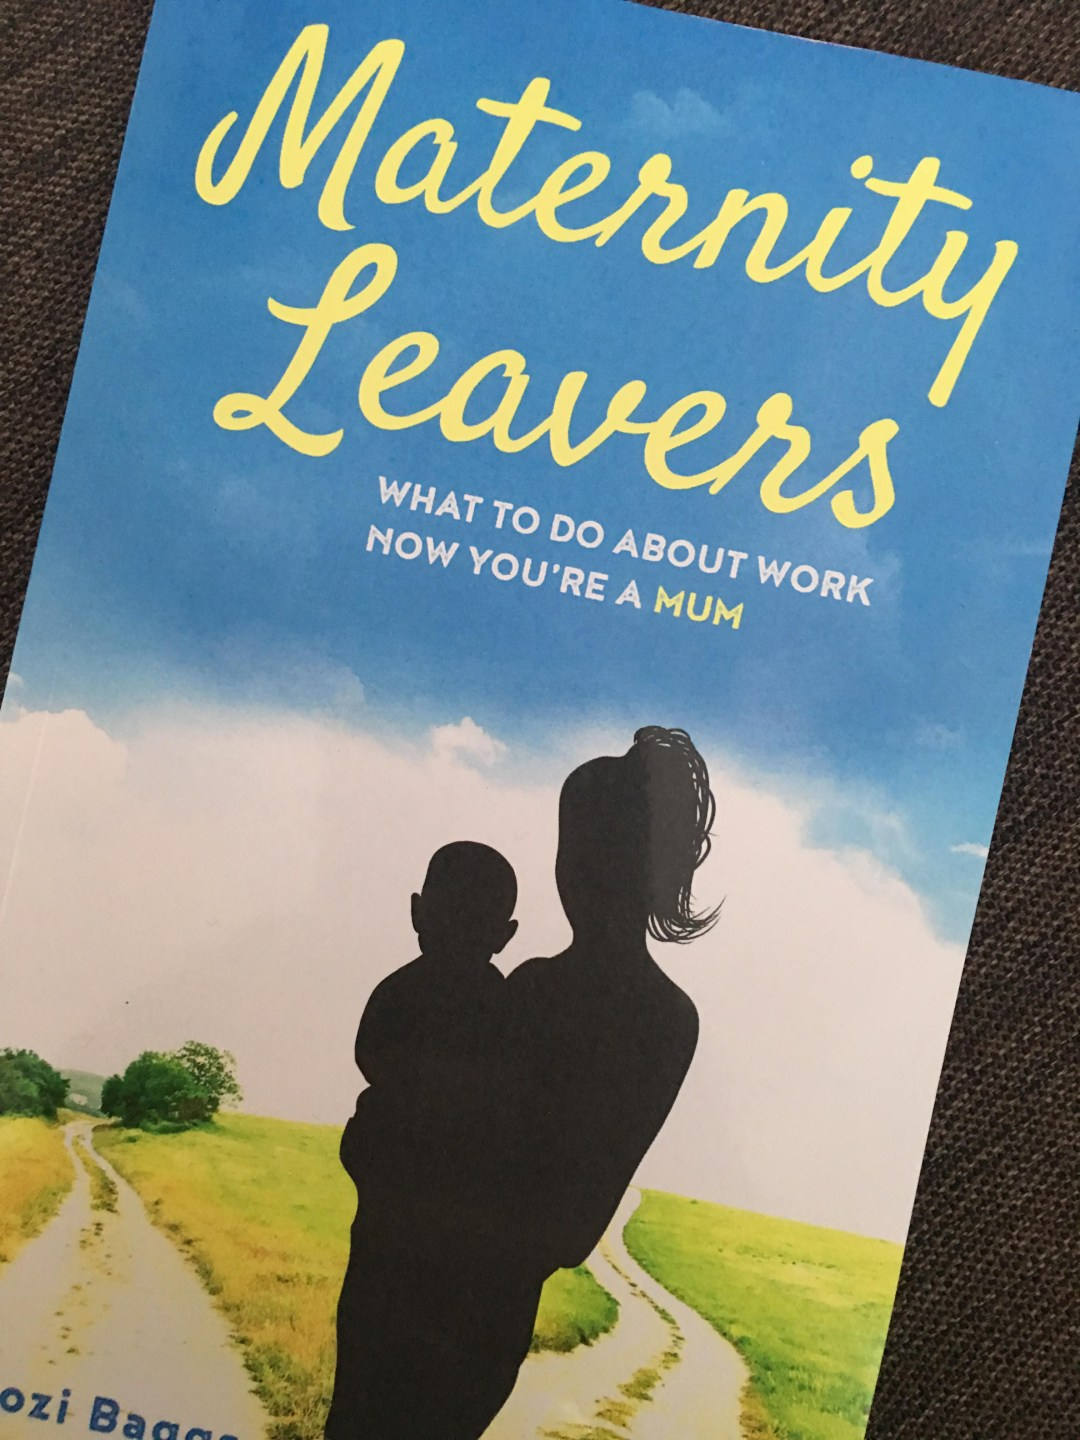 Maternity Leavers by Soozi Baggs